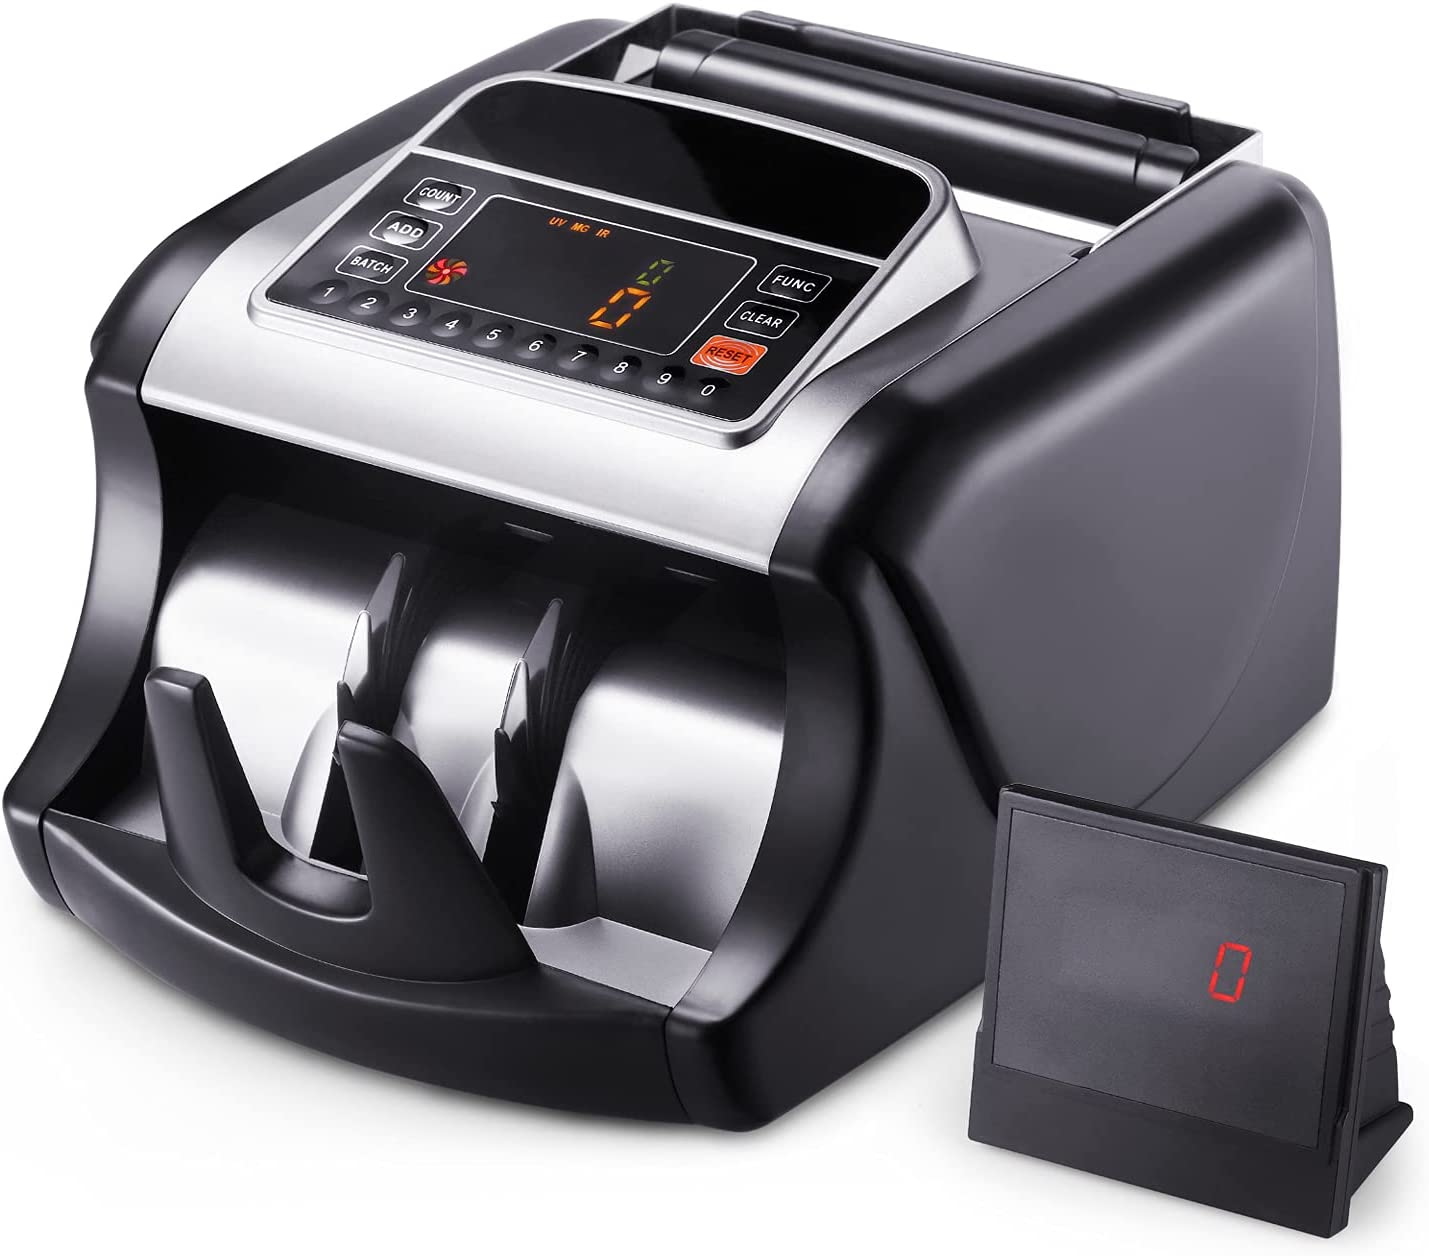 Max 56% OFF Bill Counter with UV MG Detection Surprise price IR Counting Machine